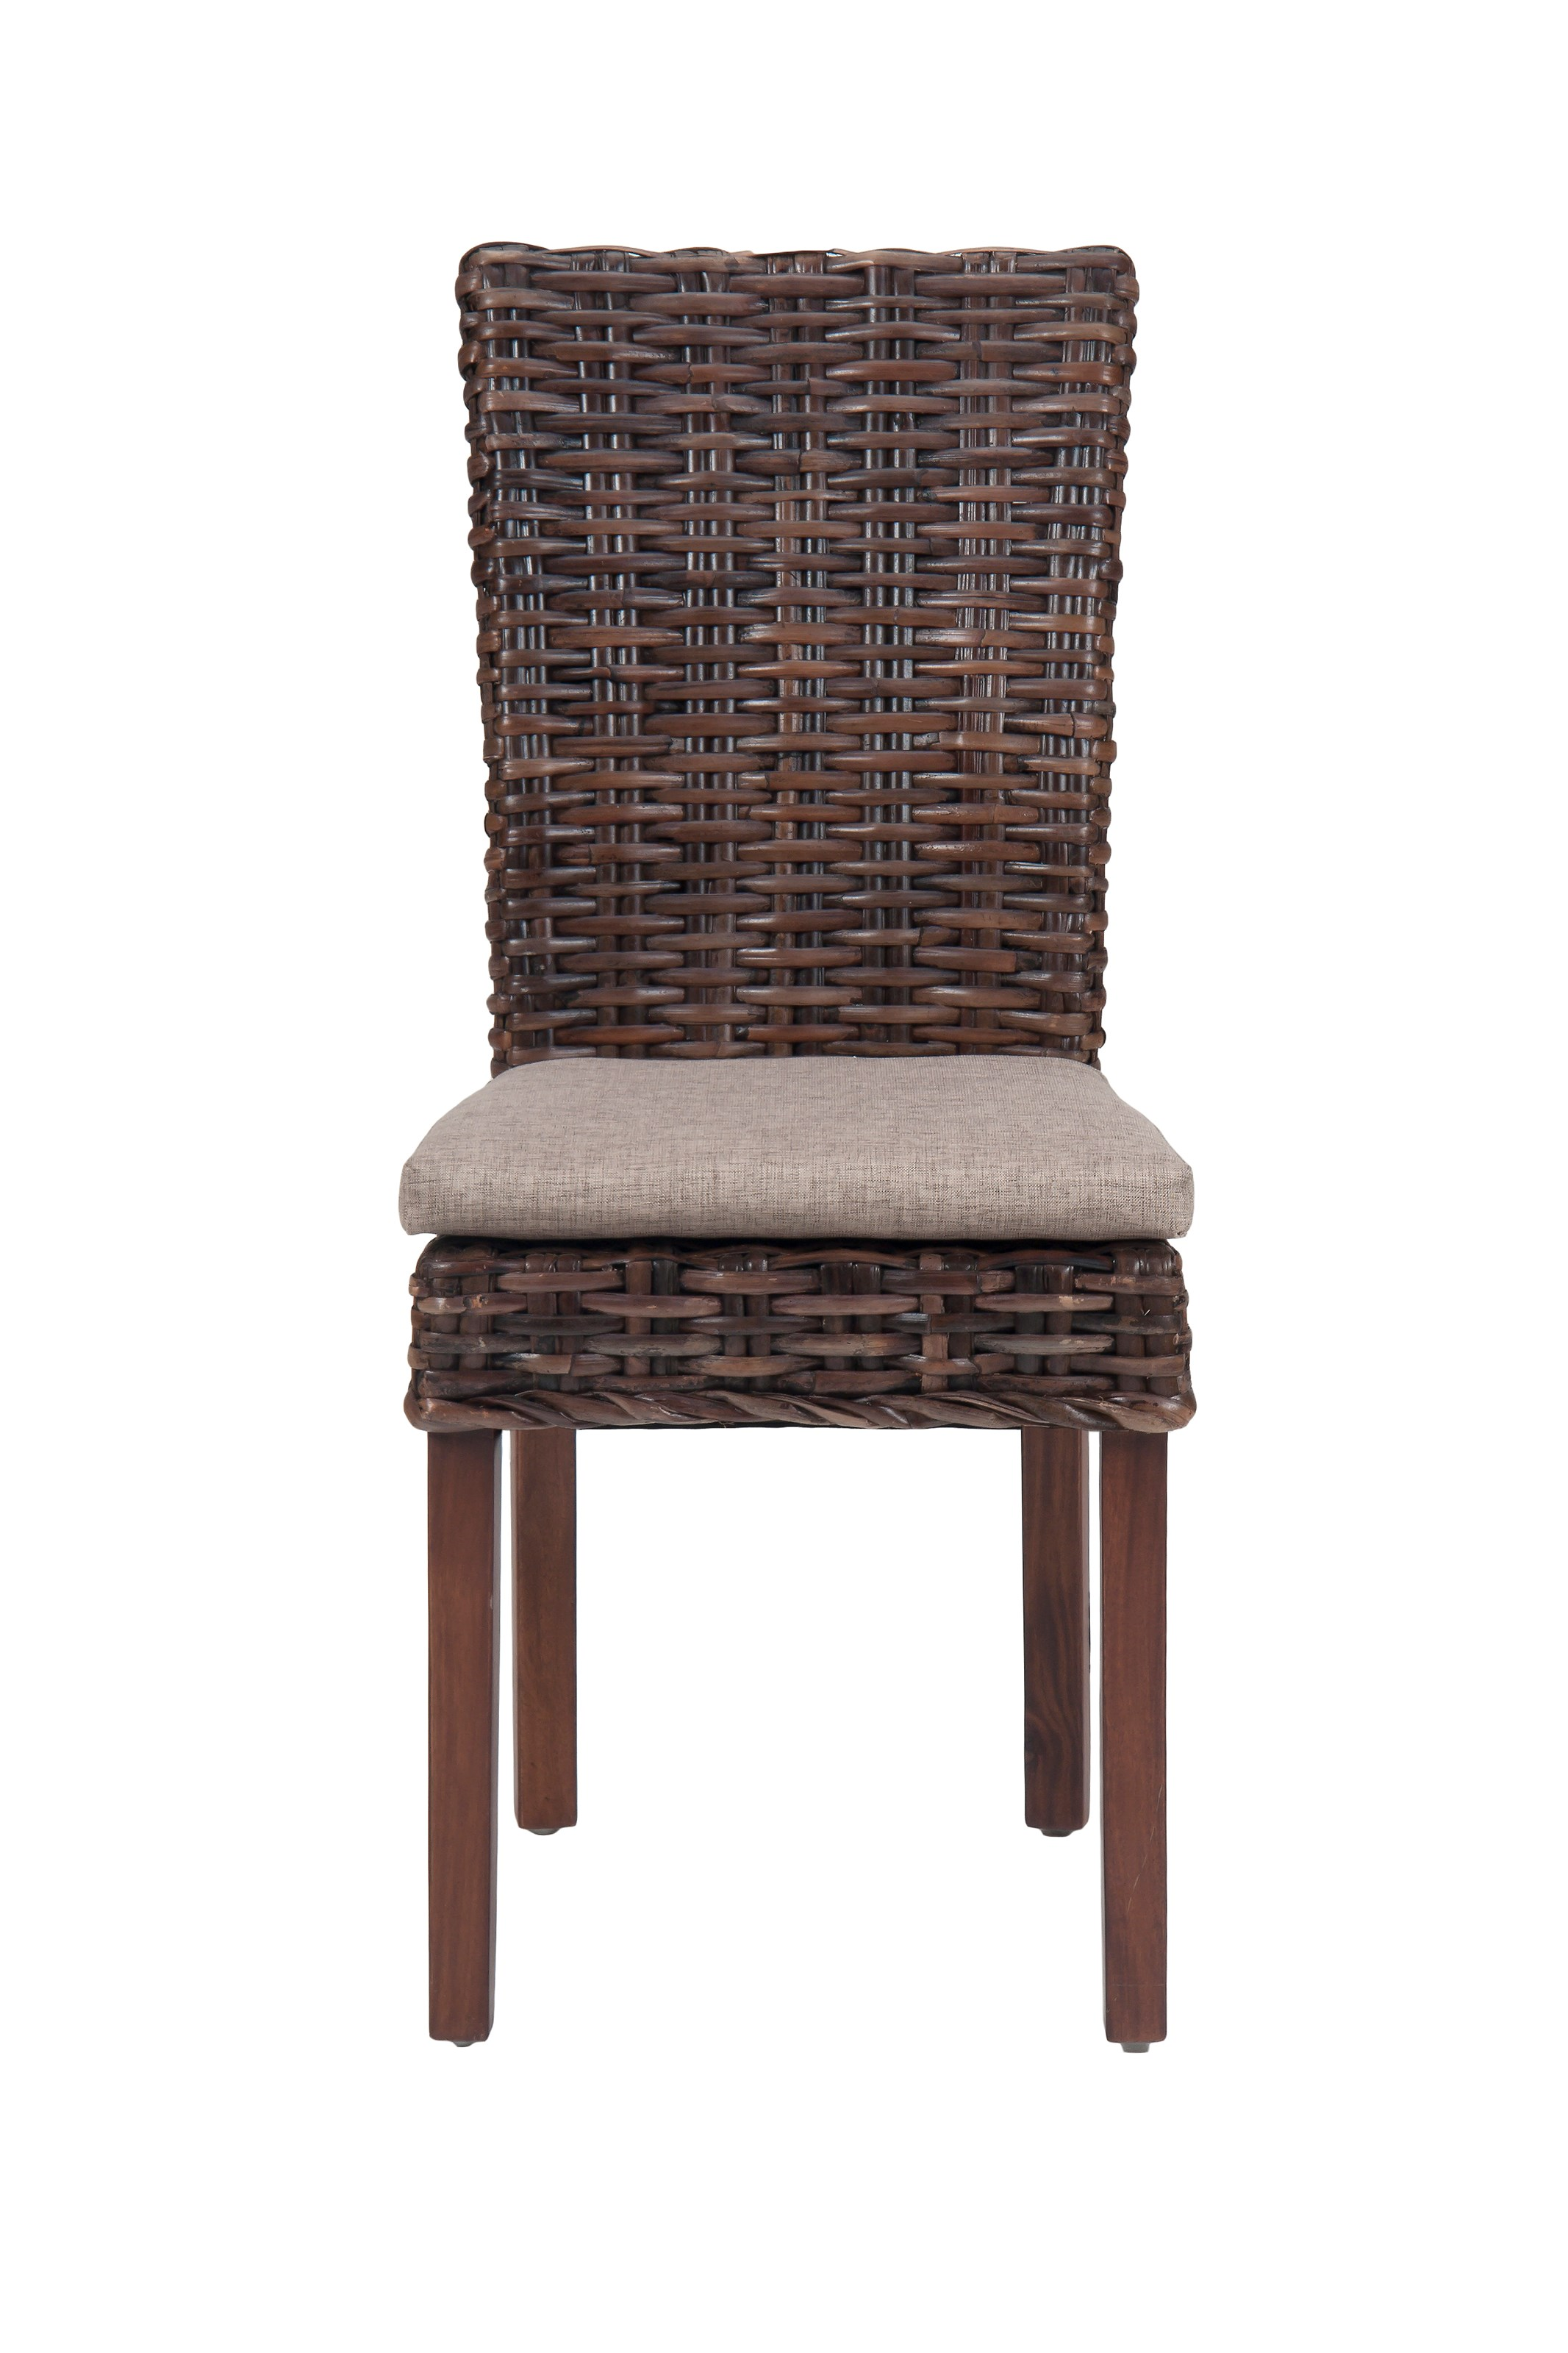 Jofran Urban Lodge Rattan Side Chair - Item Number: 733-401KD